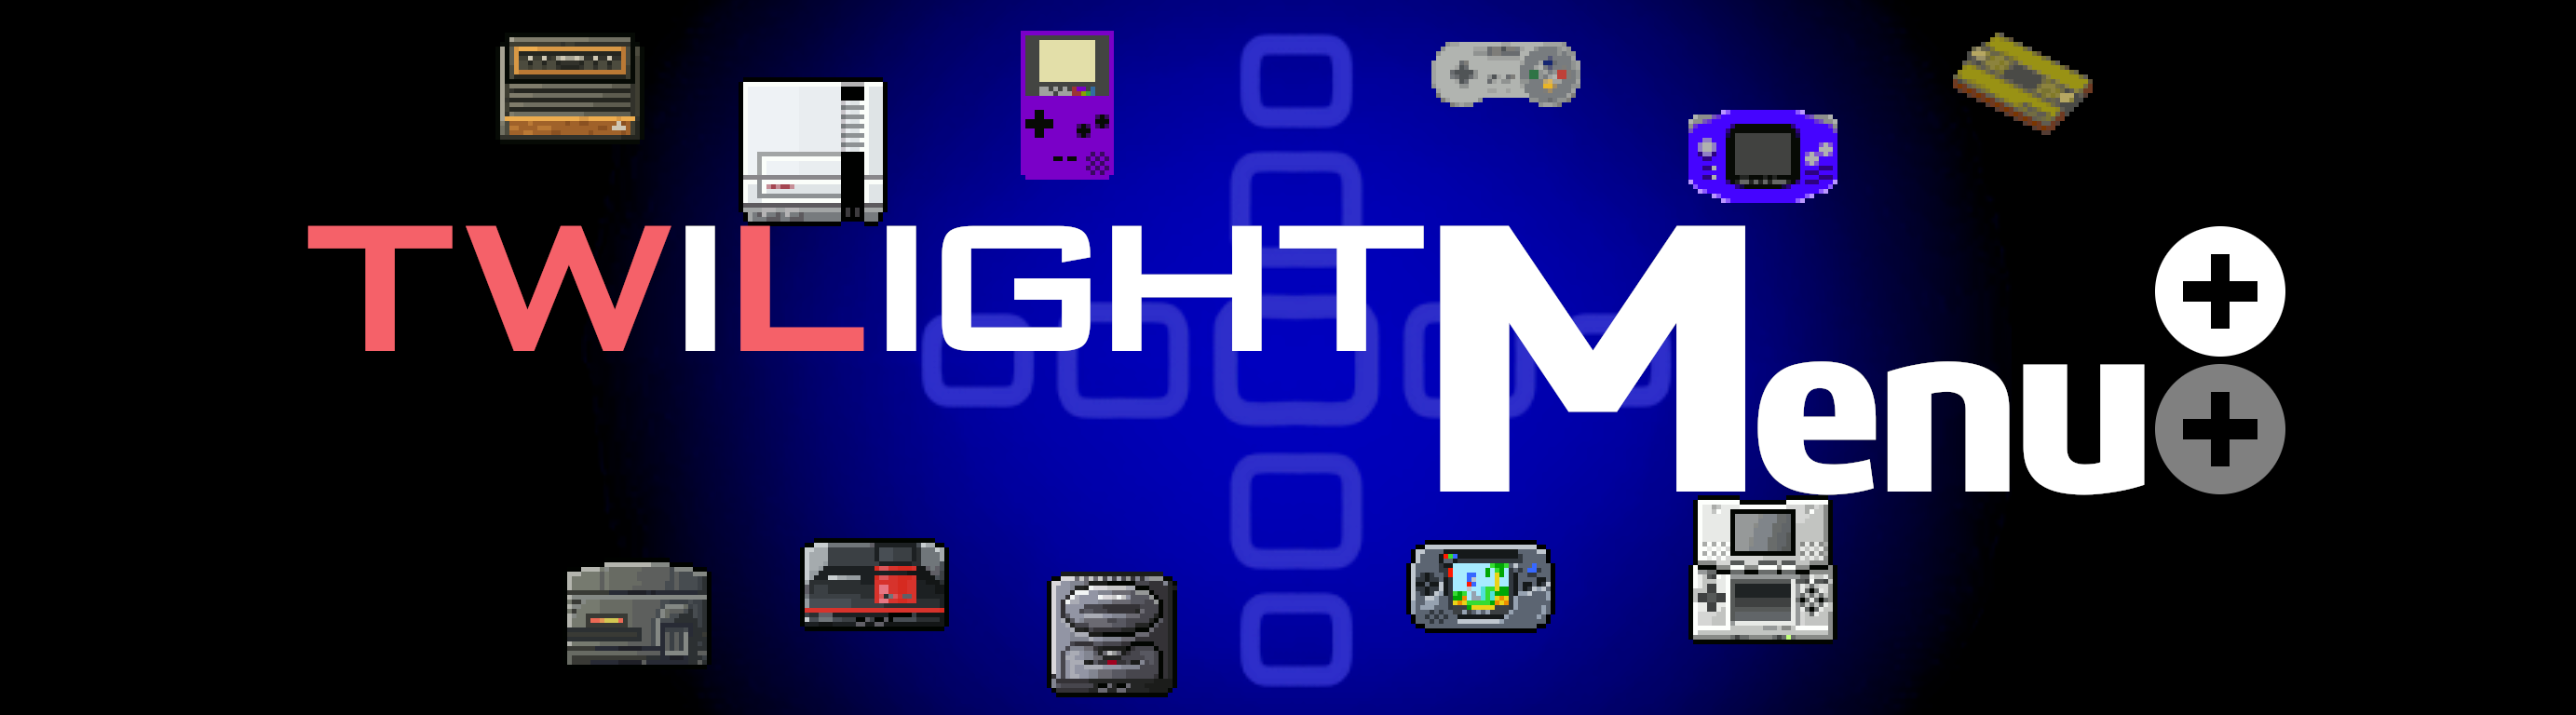 TWiLight Menu++|block|100%